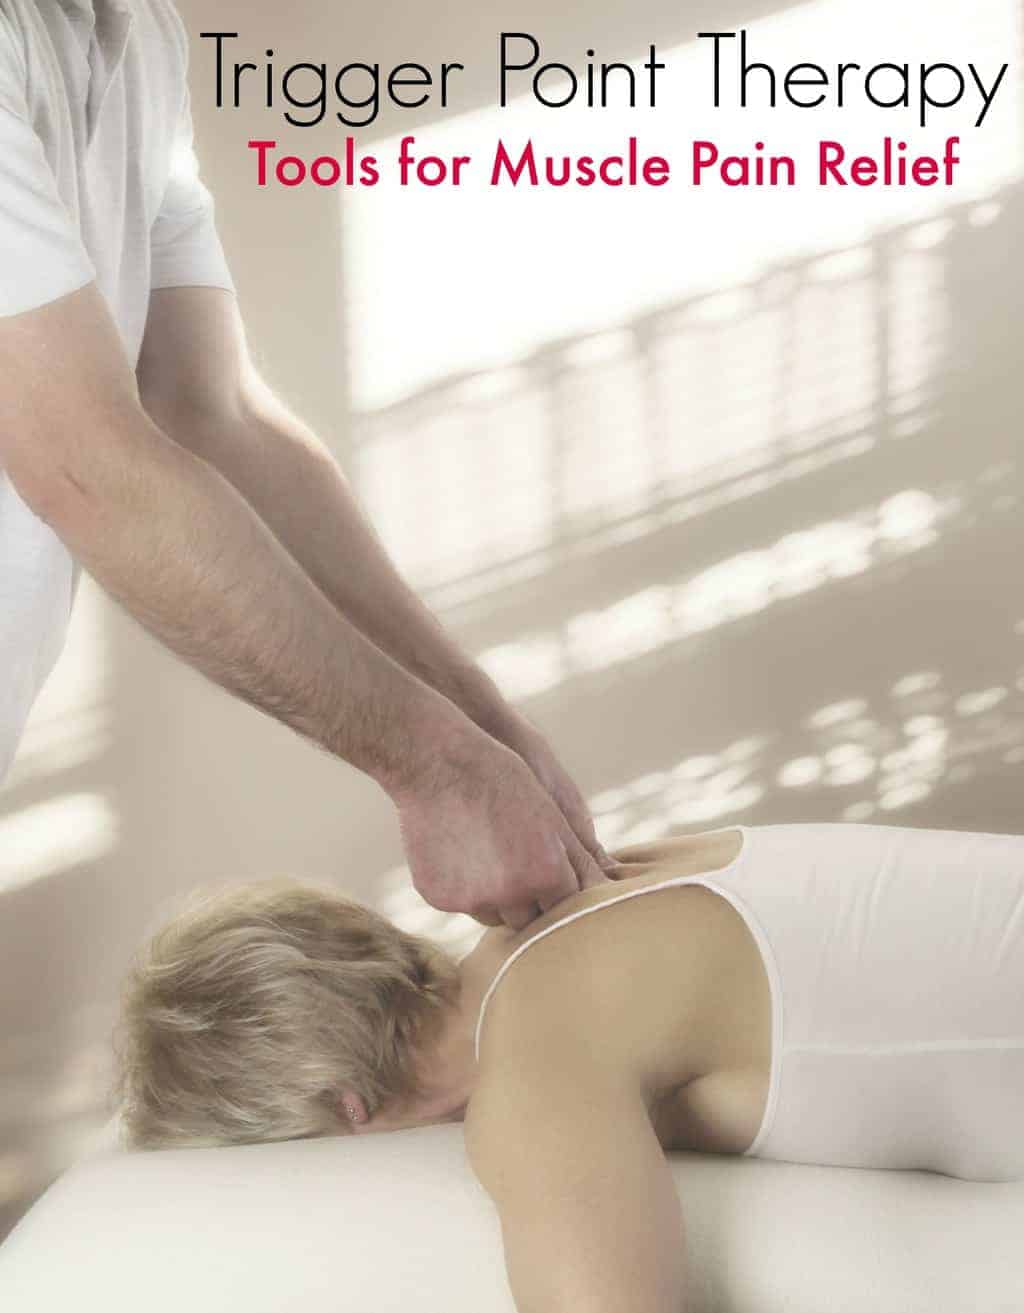 Do you suffer from trigger points and muscle pain? Try these trigger point therapy tools for more effective muscle pain relief.